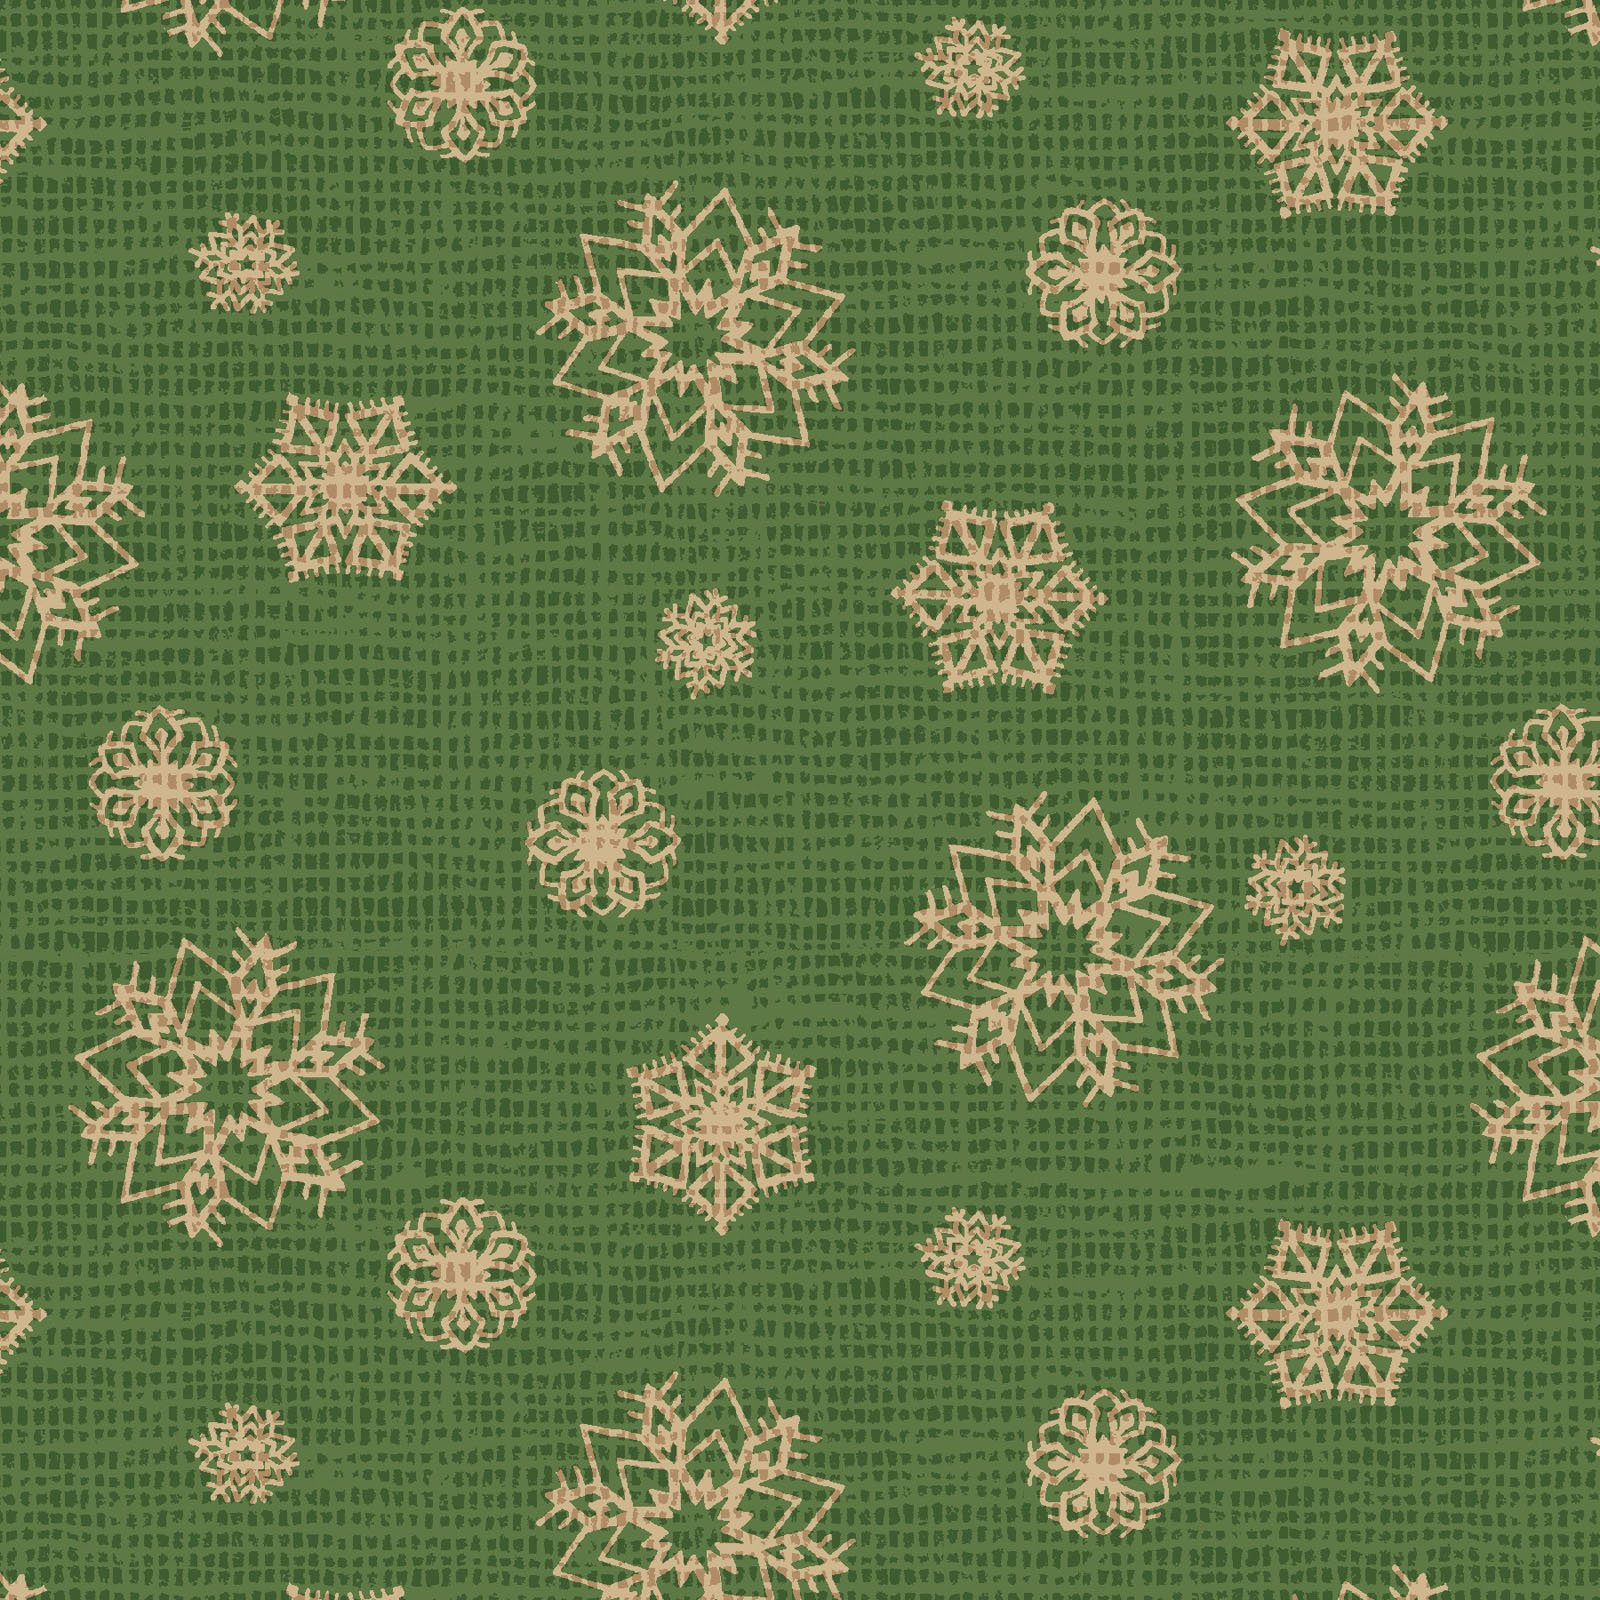 POHO-4442 G - POSTCARD HOLIDAY BY PELLA STUDIO SNOWFLAKE GREEN - ARRIVING IN JULY 2021